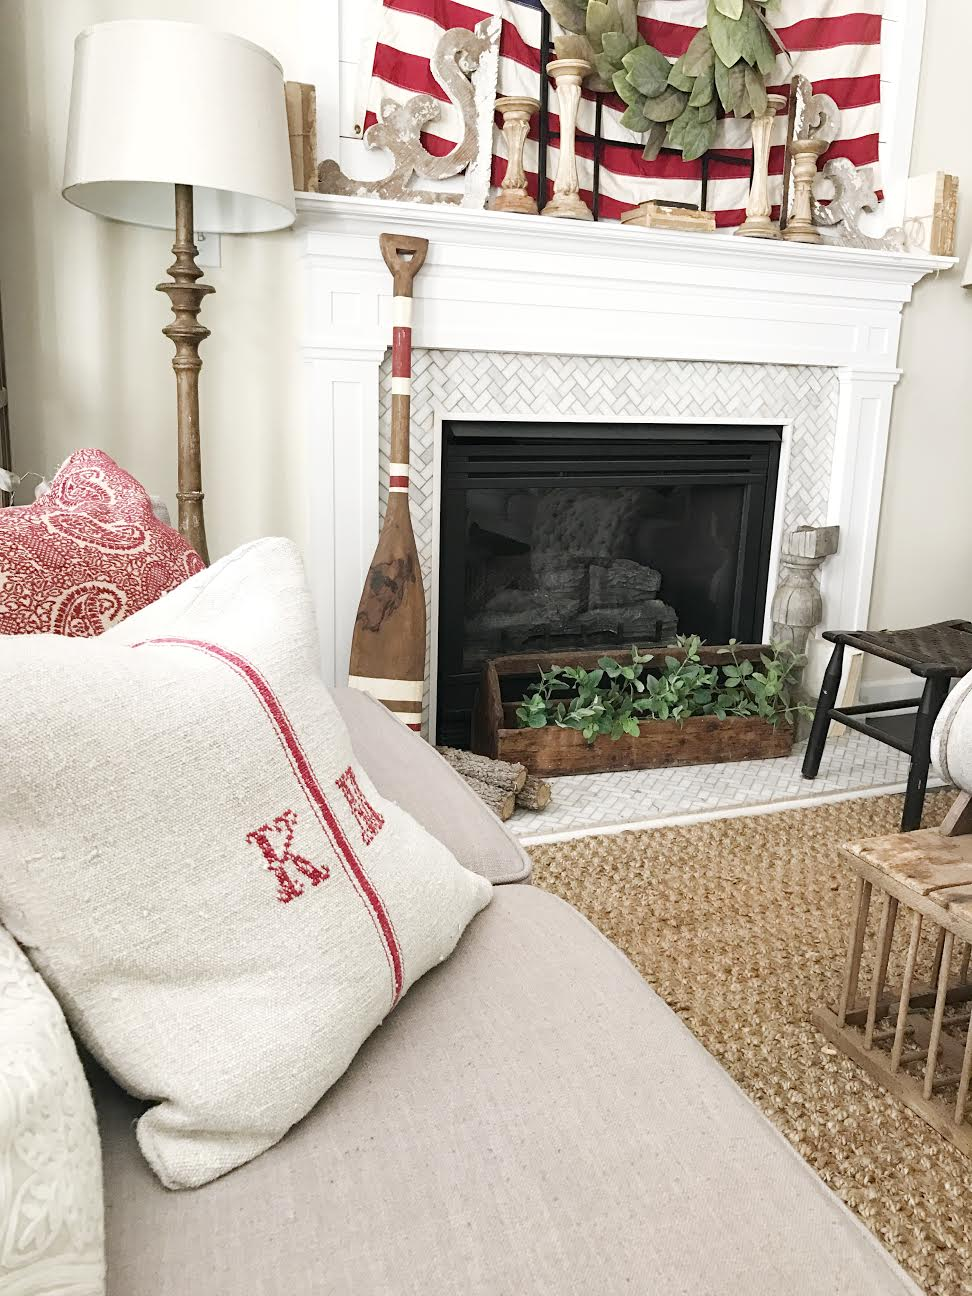 Farmhouse Fourth of July Living Room Tour by Plum Pretty Decor and Design